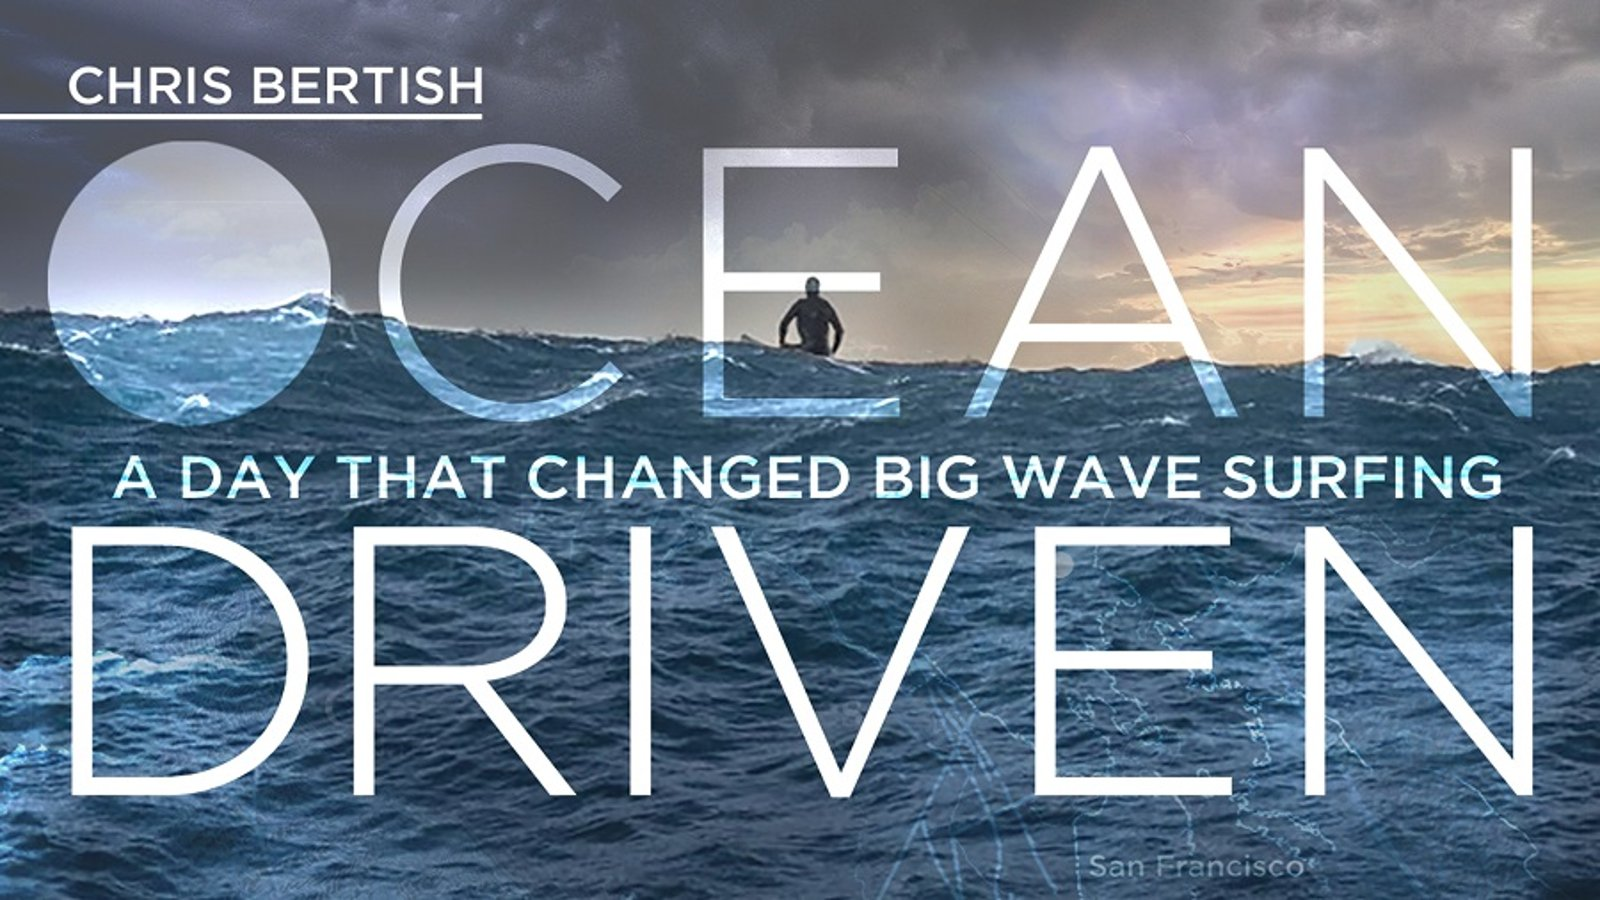 Ocean Driven - Chris Bertish's Big Wave Surfing Odyssey